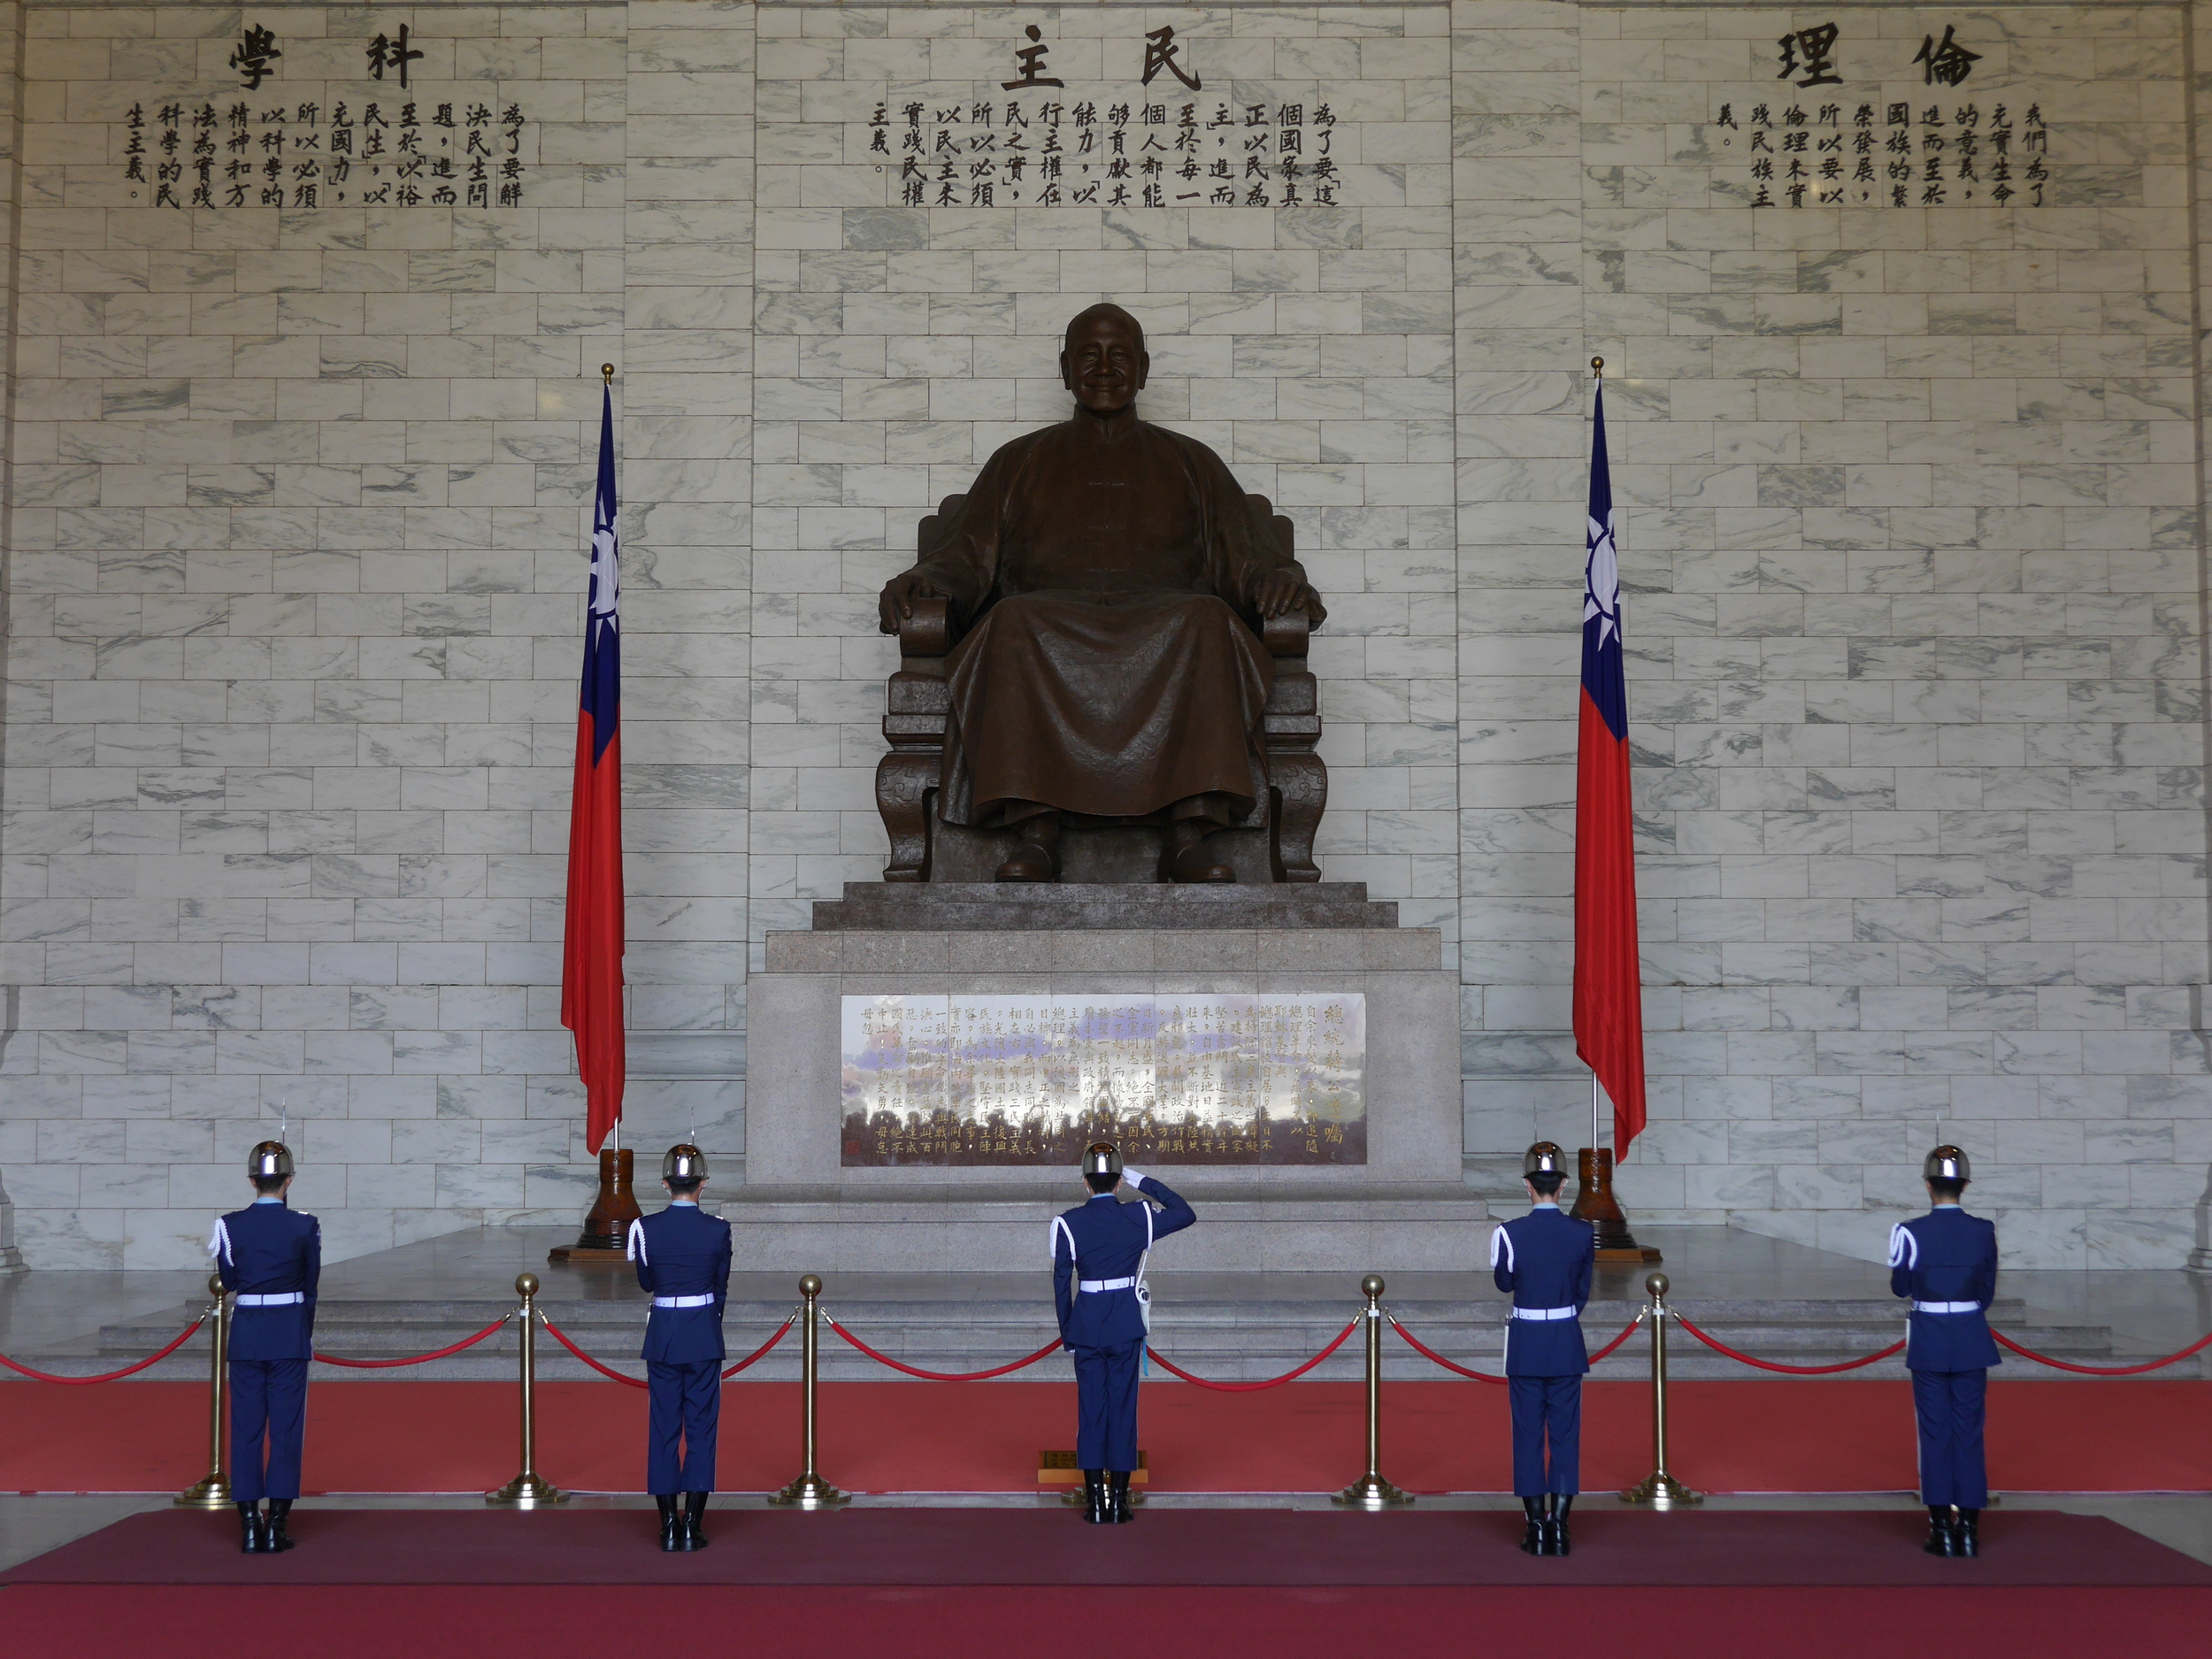 Guards performing the changing of the guard ceremony in front of the statue of Chiang Kai-shek.